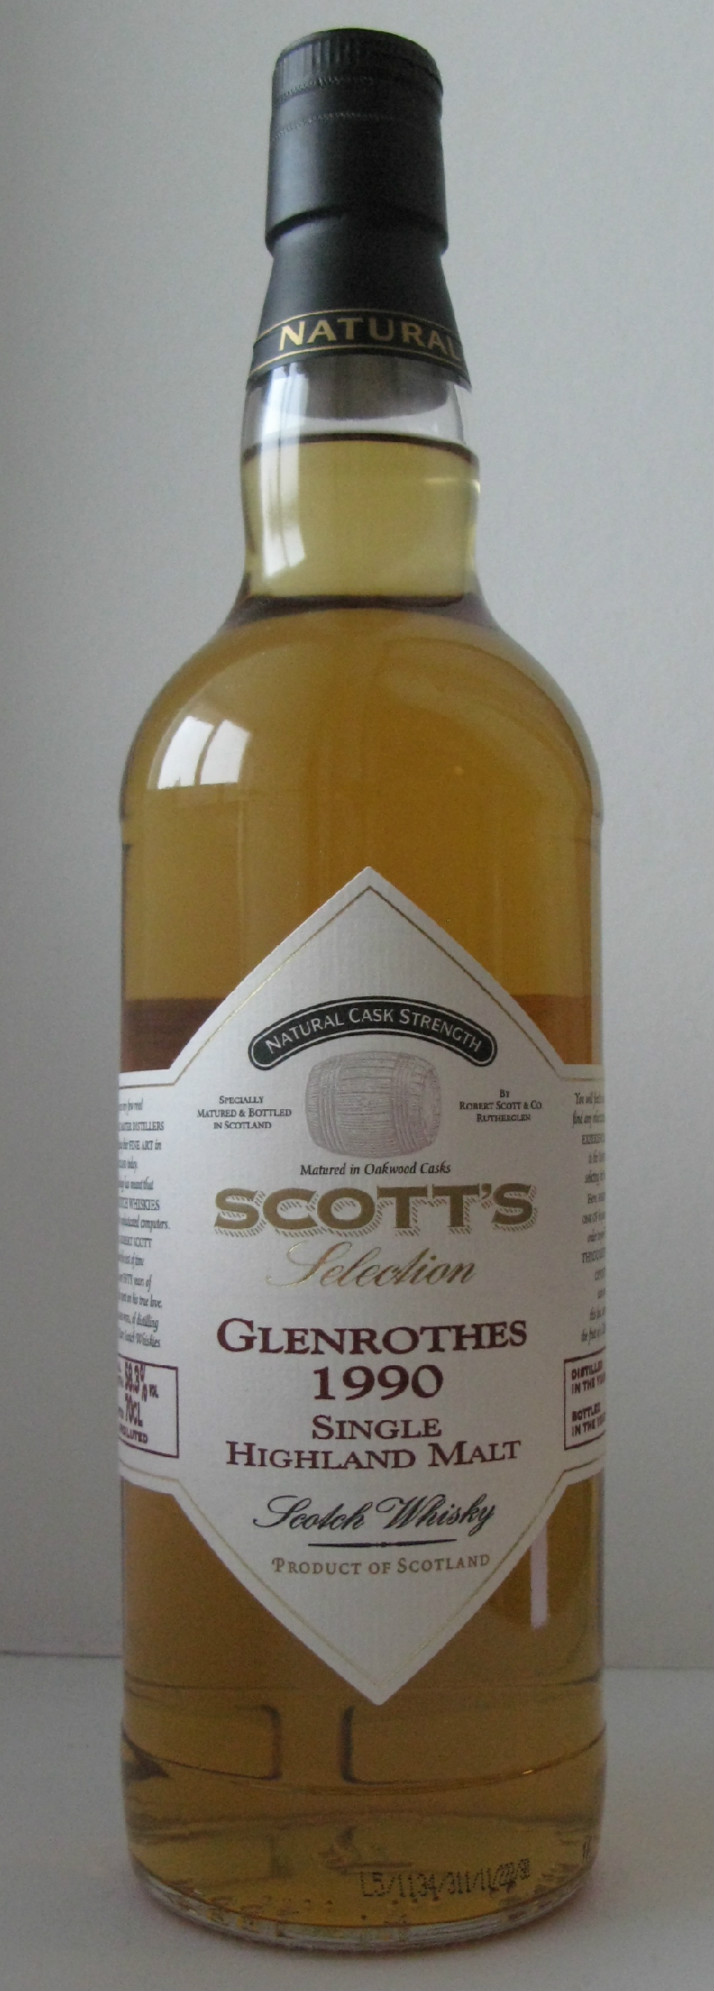 glenrothes-1990-2011